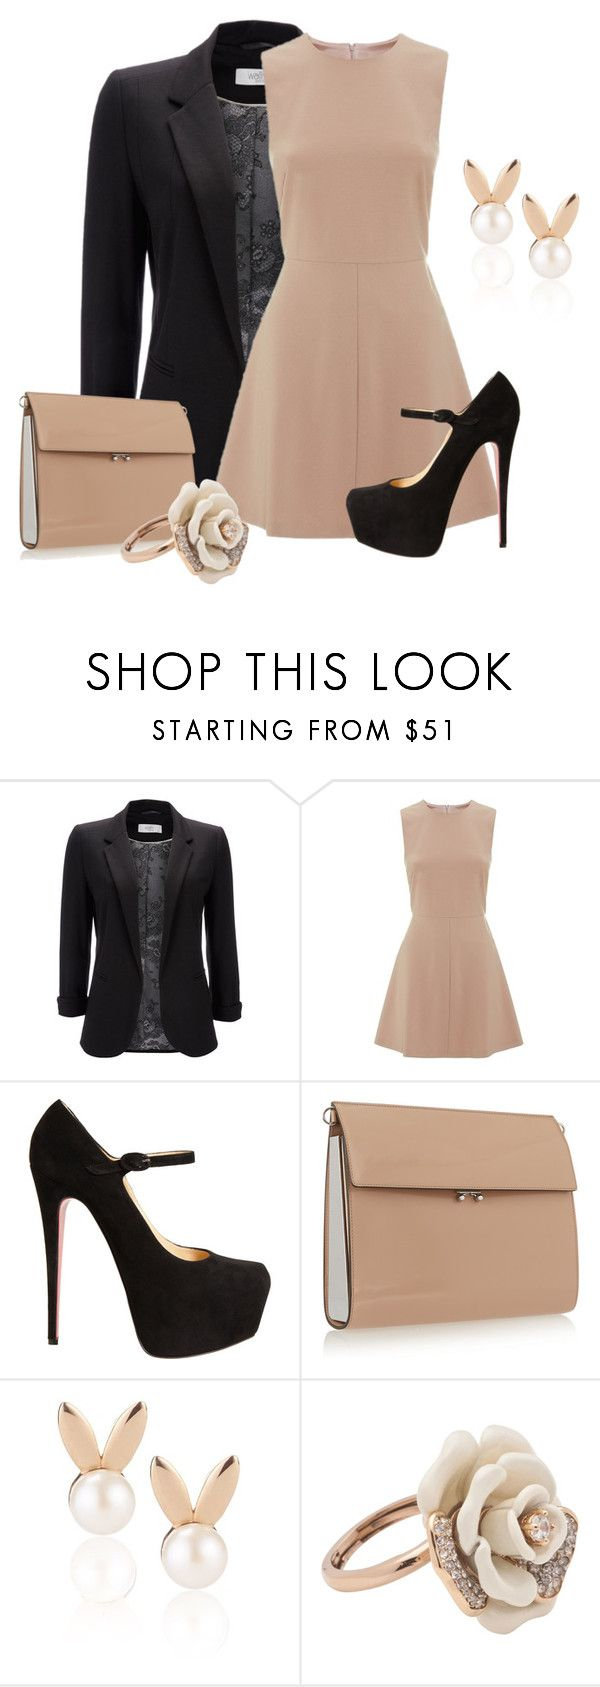 """Toast"" by kylen91 ❤ liked on Polyvore featuring Wallis, RED Valentino, Christian Louboutin, Marni, Aamaya by priyanka and Juicy Couture"